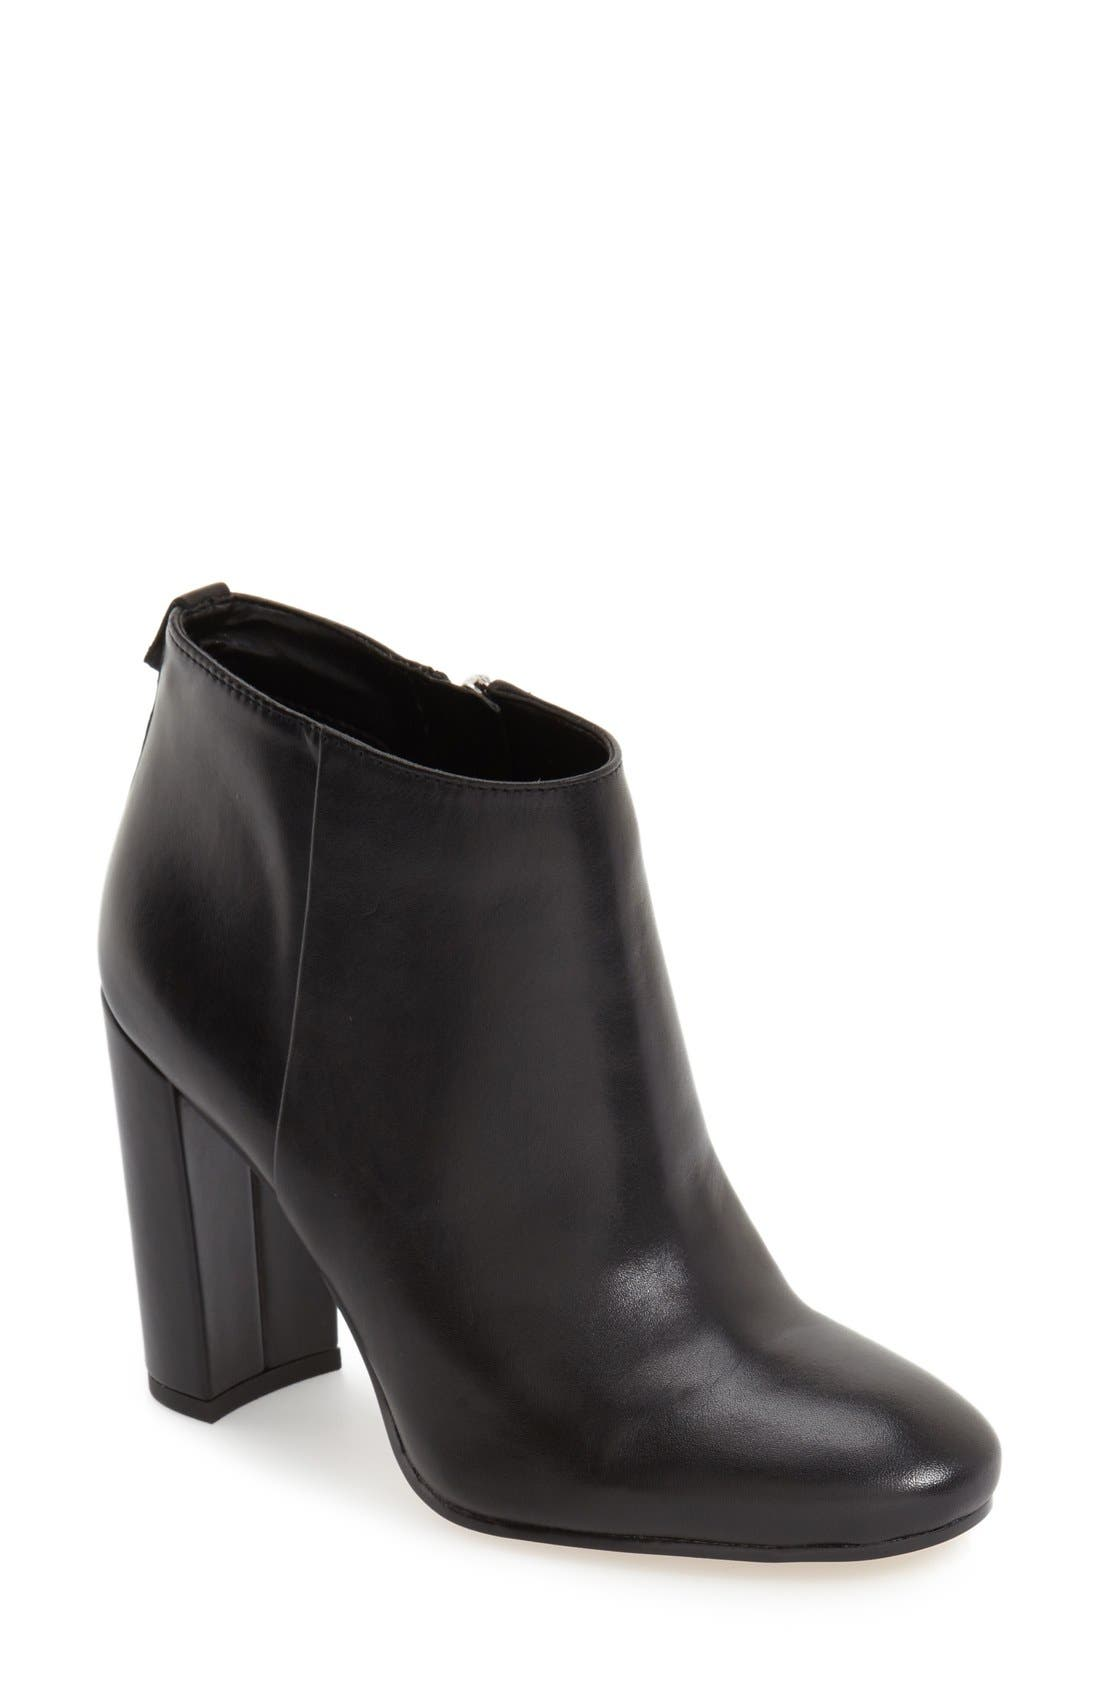 'Cambell' Bootie,                             Main thumbnail 1, color,                             001